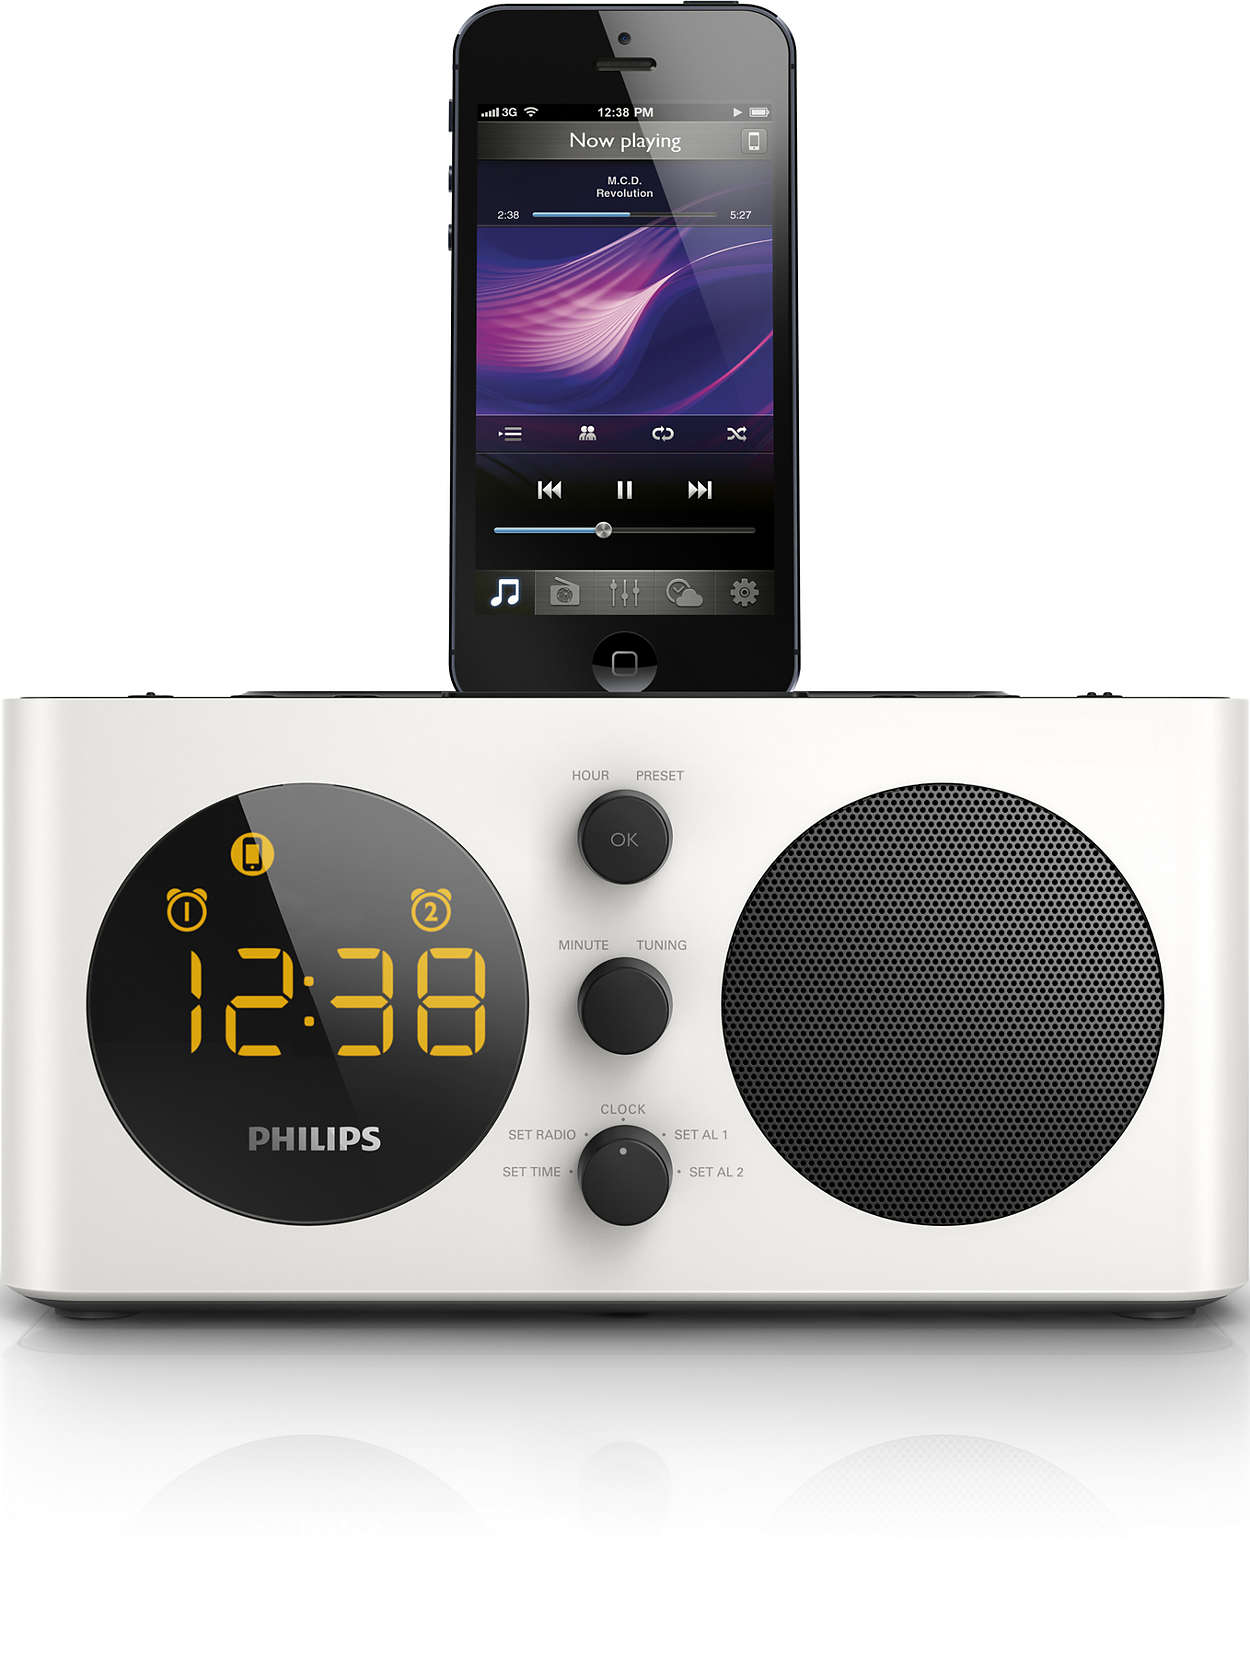 alarm clock radio for ipod iphone aj6200d 98 philips. Black Bedroom Furniture Sets. Home Design Ideas